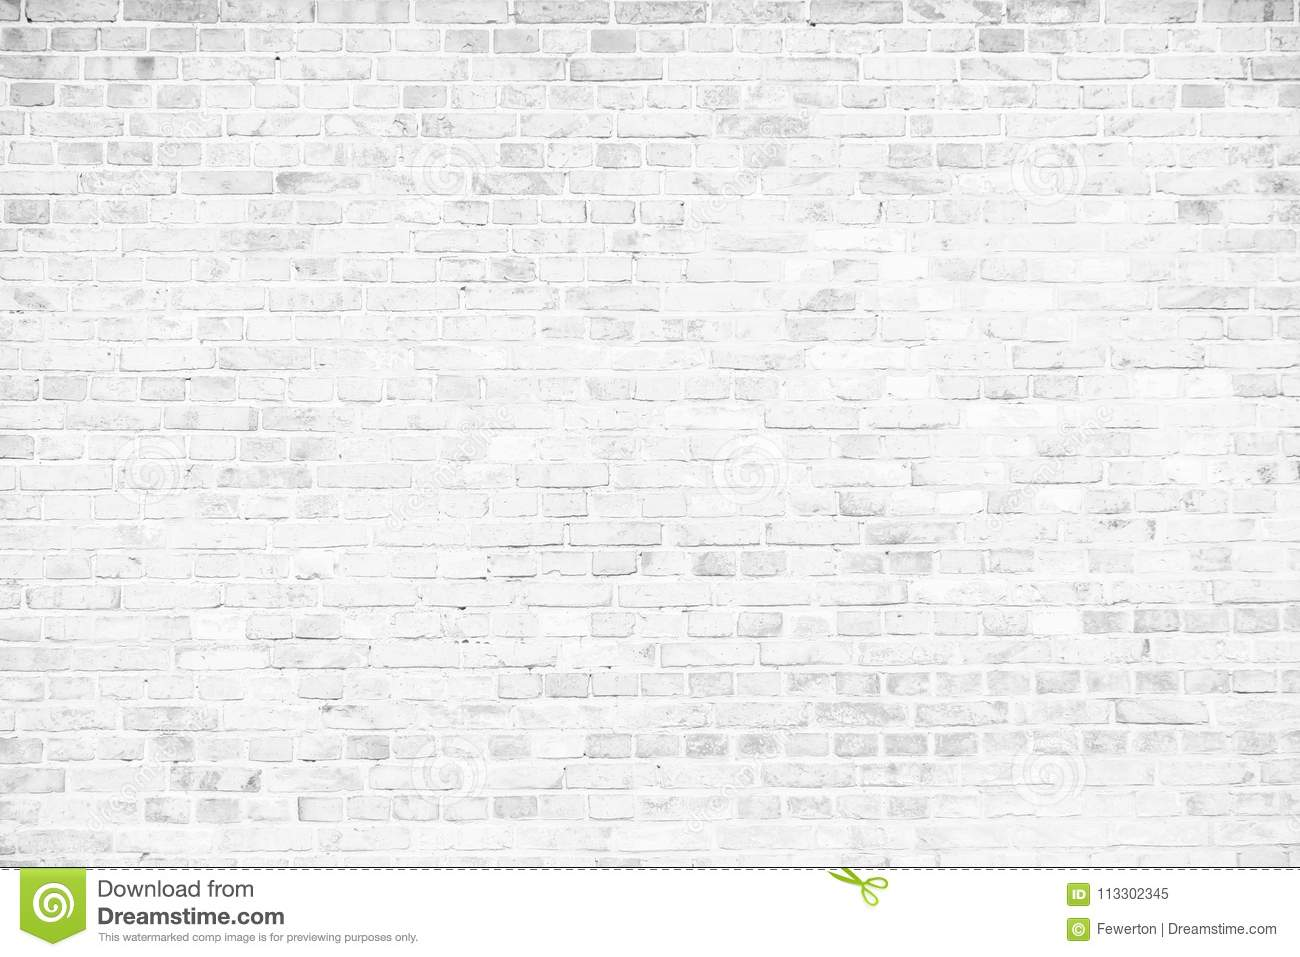 Simple grungy white brick wall as seamless pattern texture background